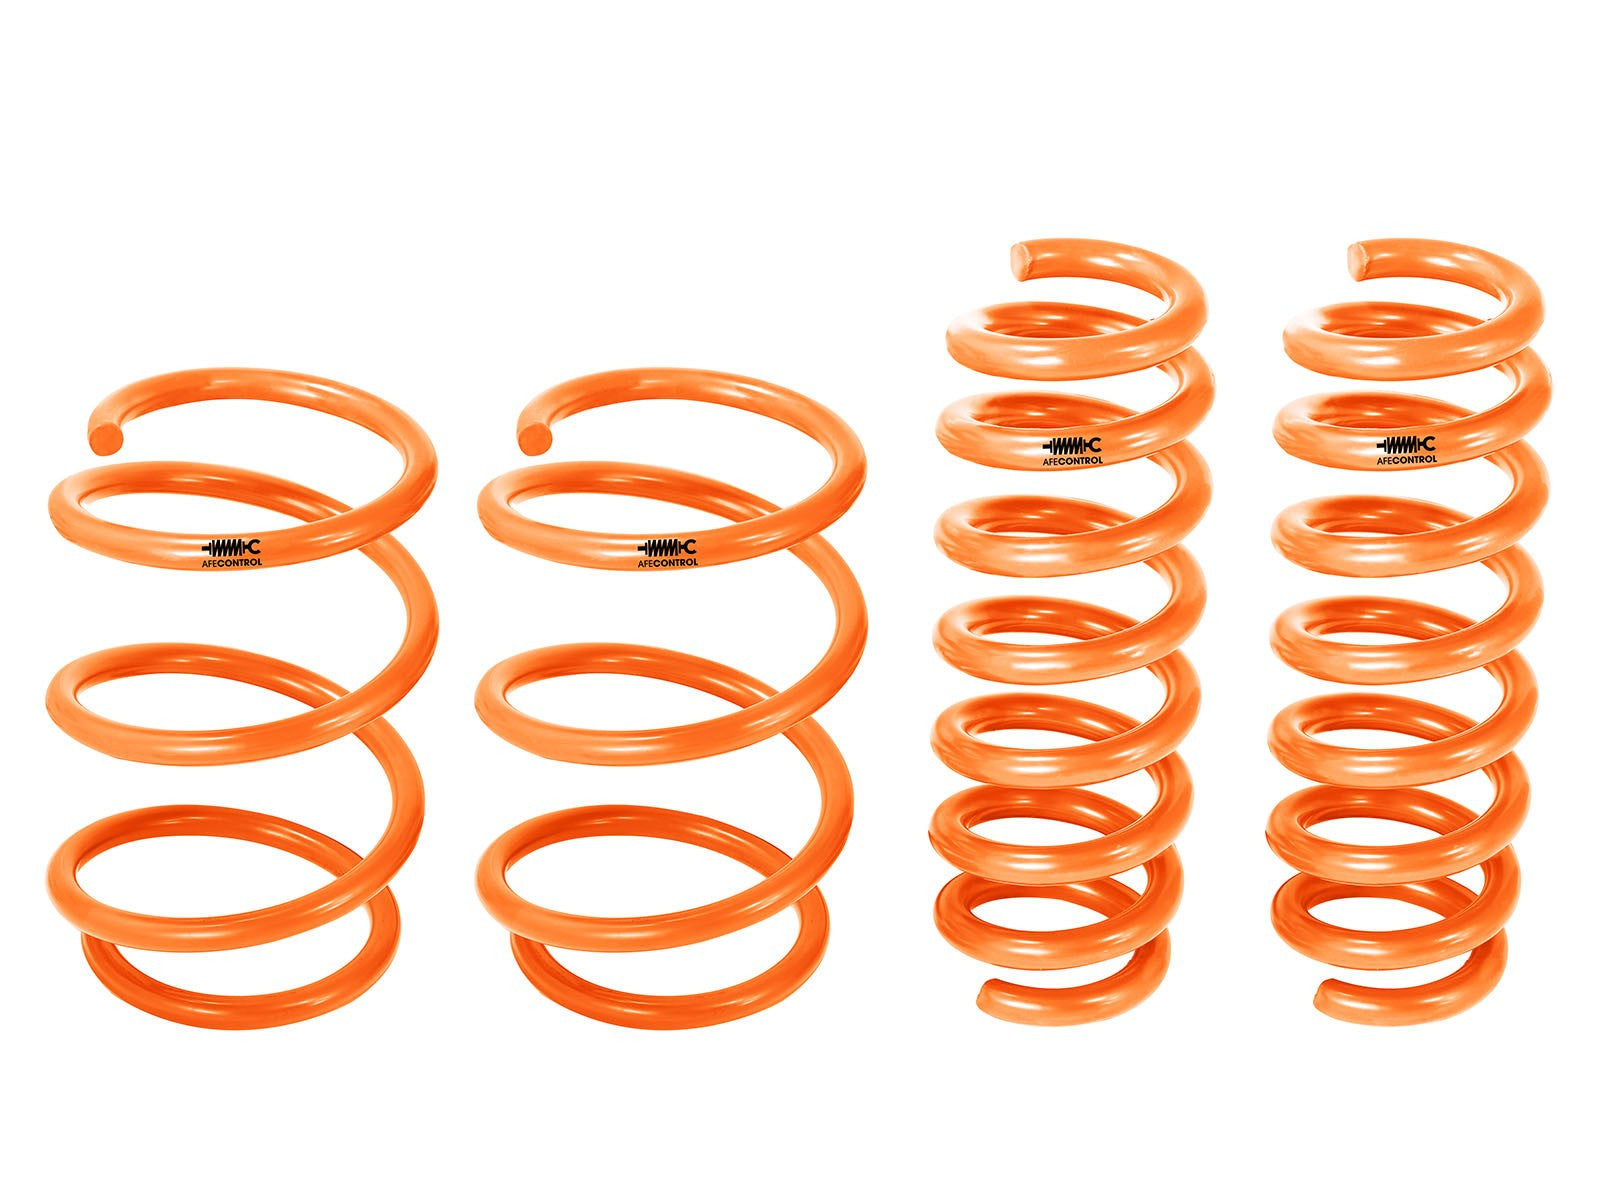 aFe POWER 335i/435i (F30/F32) 12-16 Orange aFe Control Lowering Springs - Bimmer Performance Center